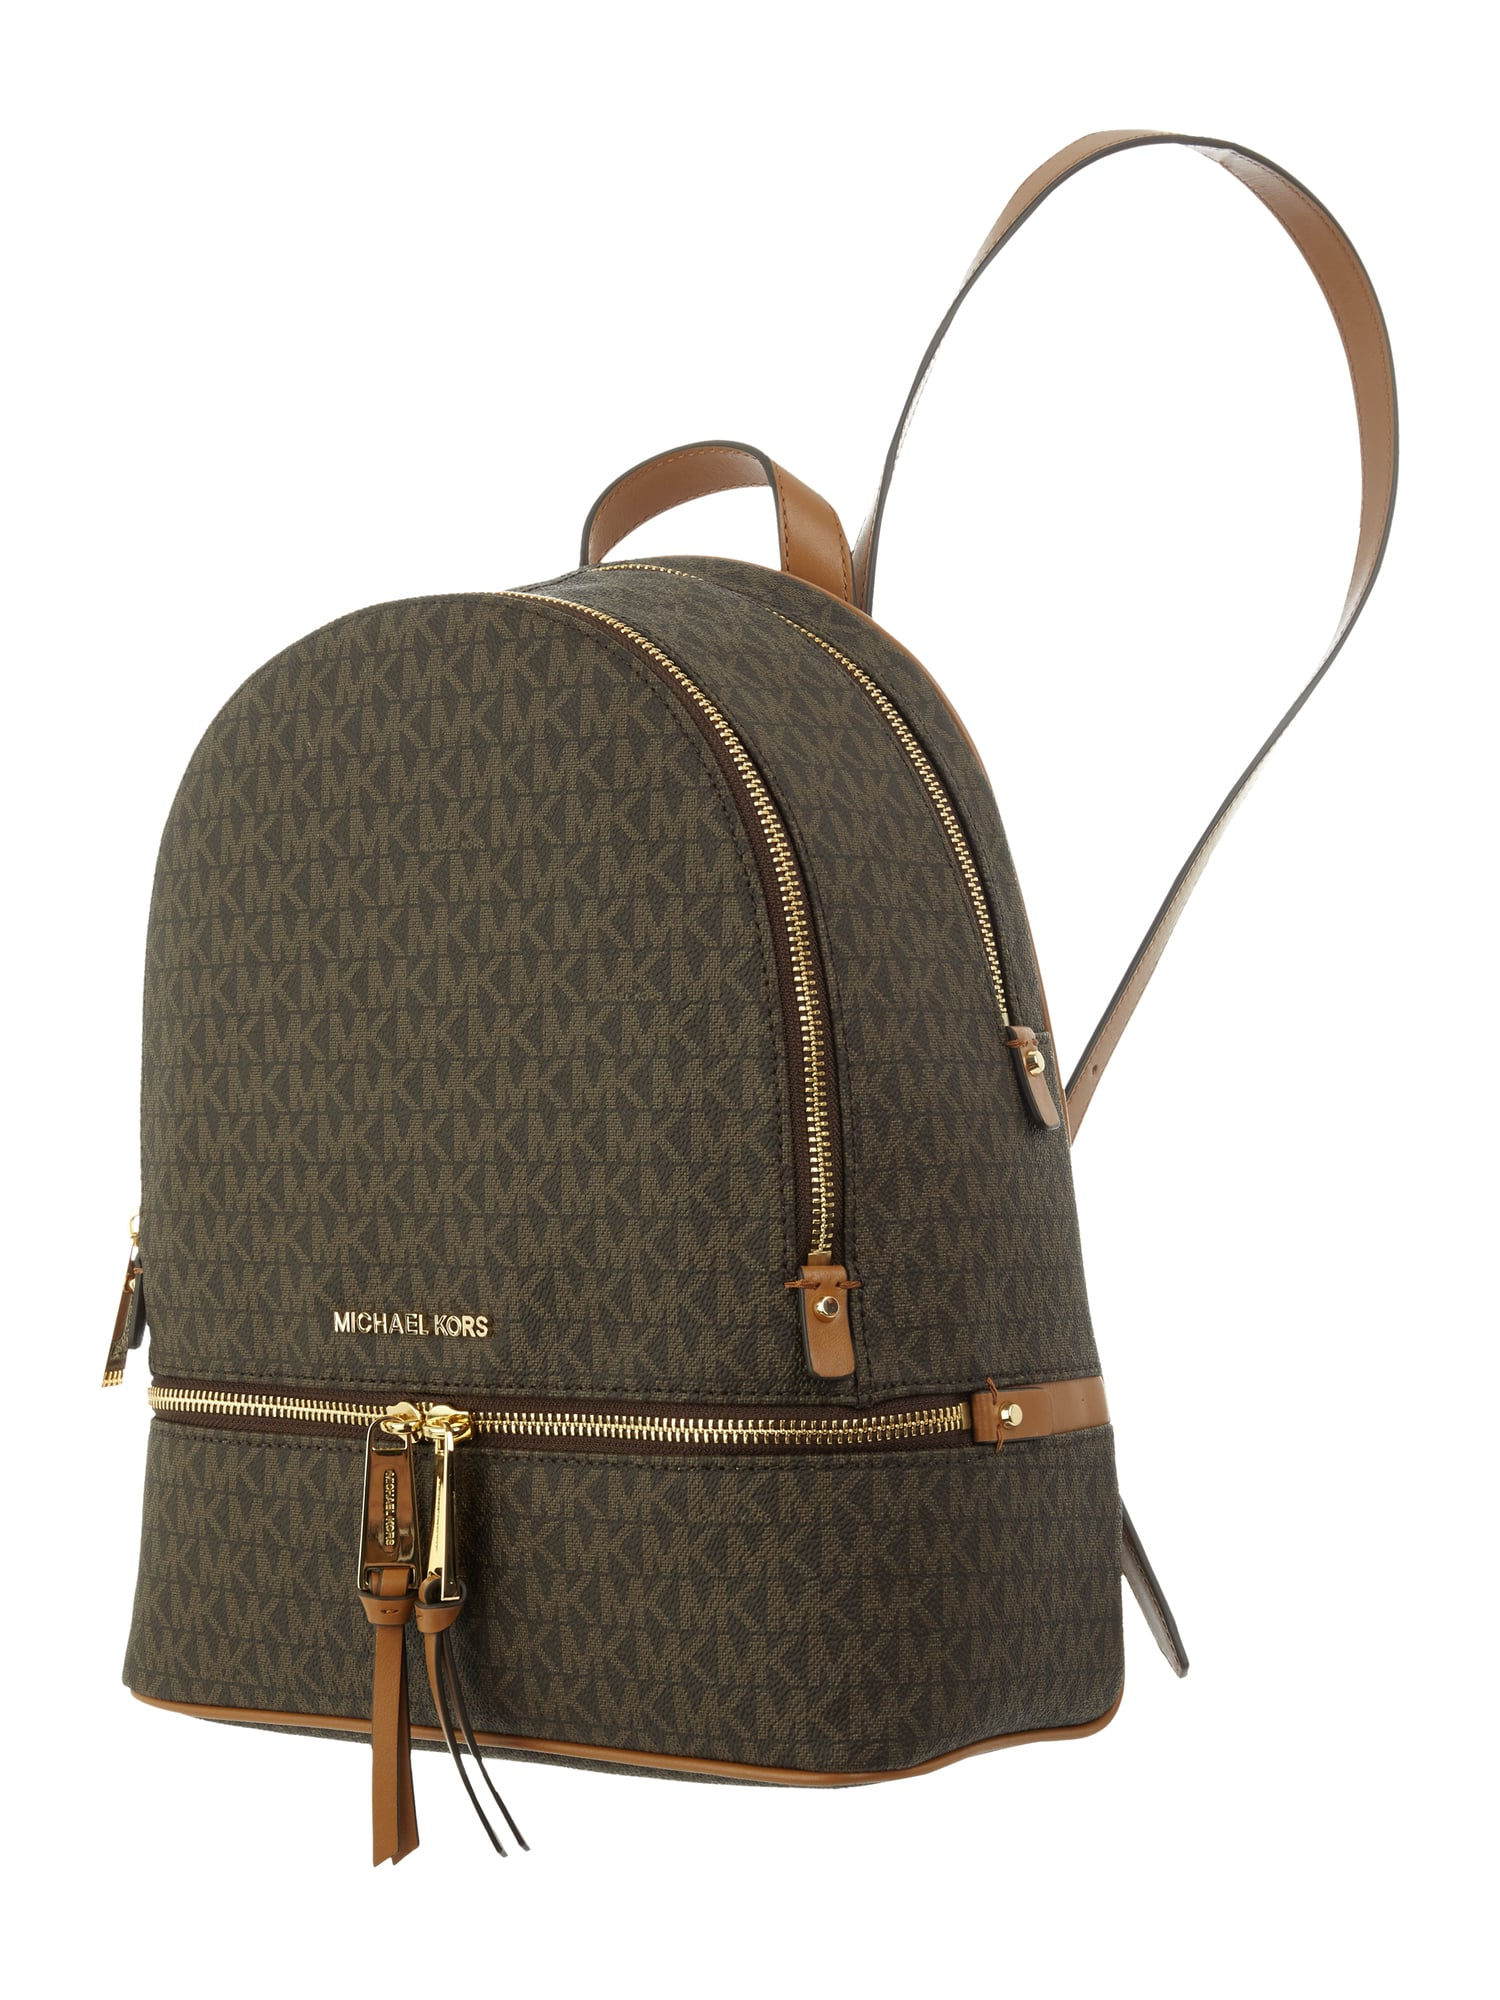 michael michael kors rucksack mit logo muster in braun online kaufen 9655538 p c online shop. Black Bedroom Furniture Sets. Home Design Ideas